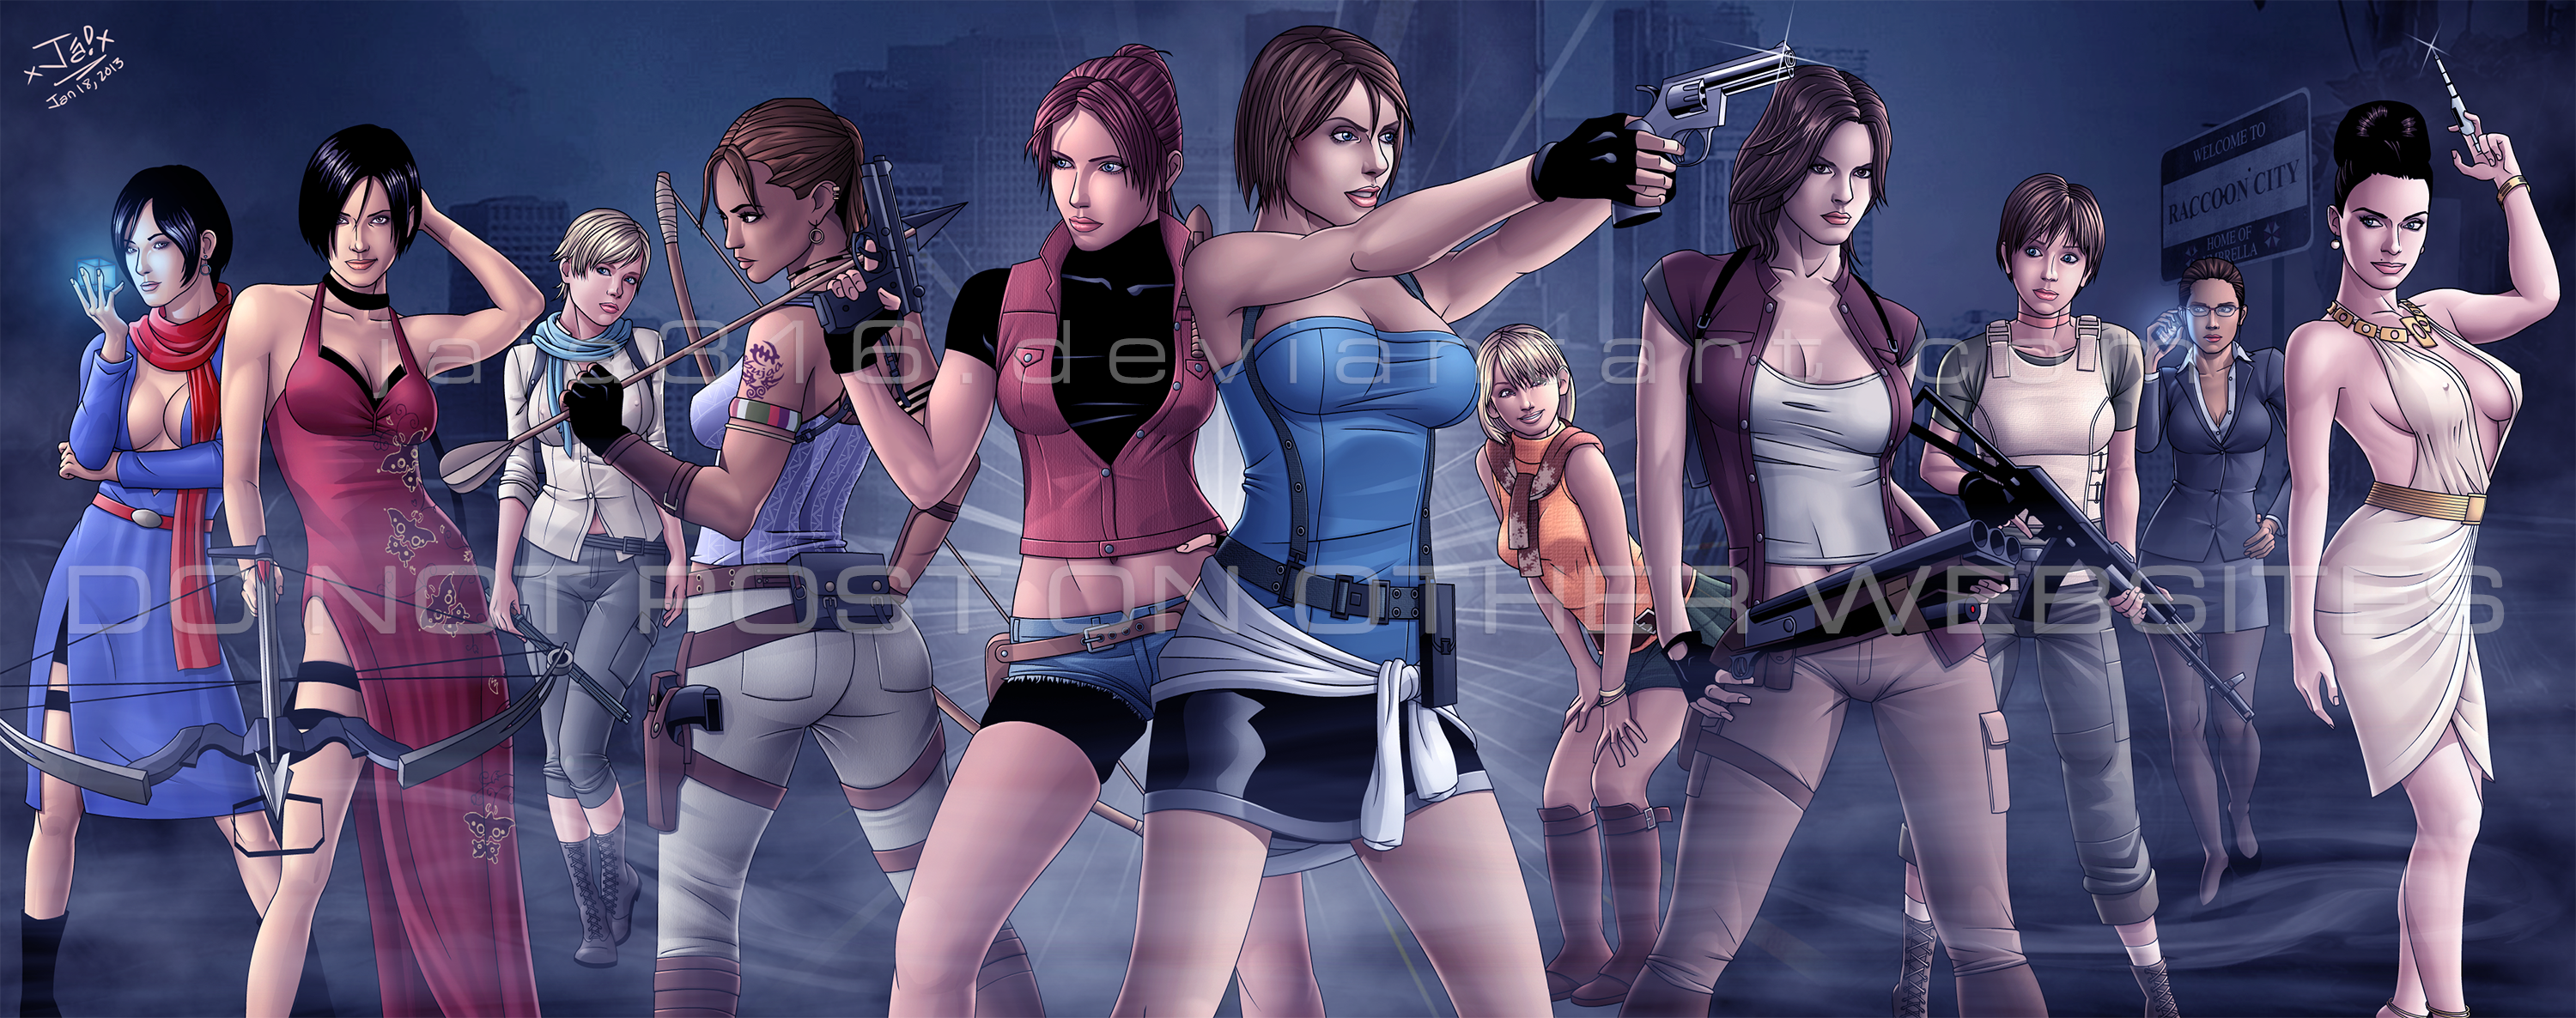 Resident evil girl humping sexual photos